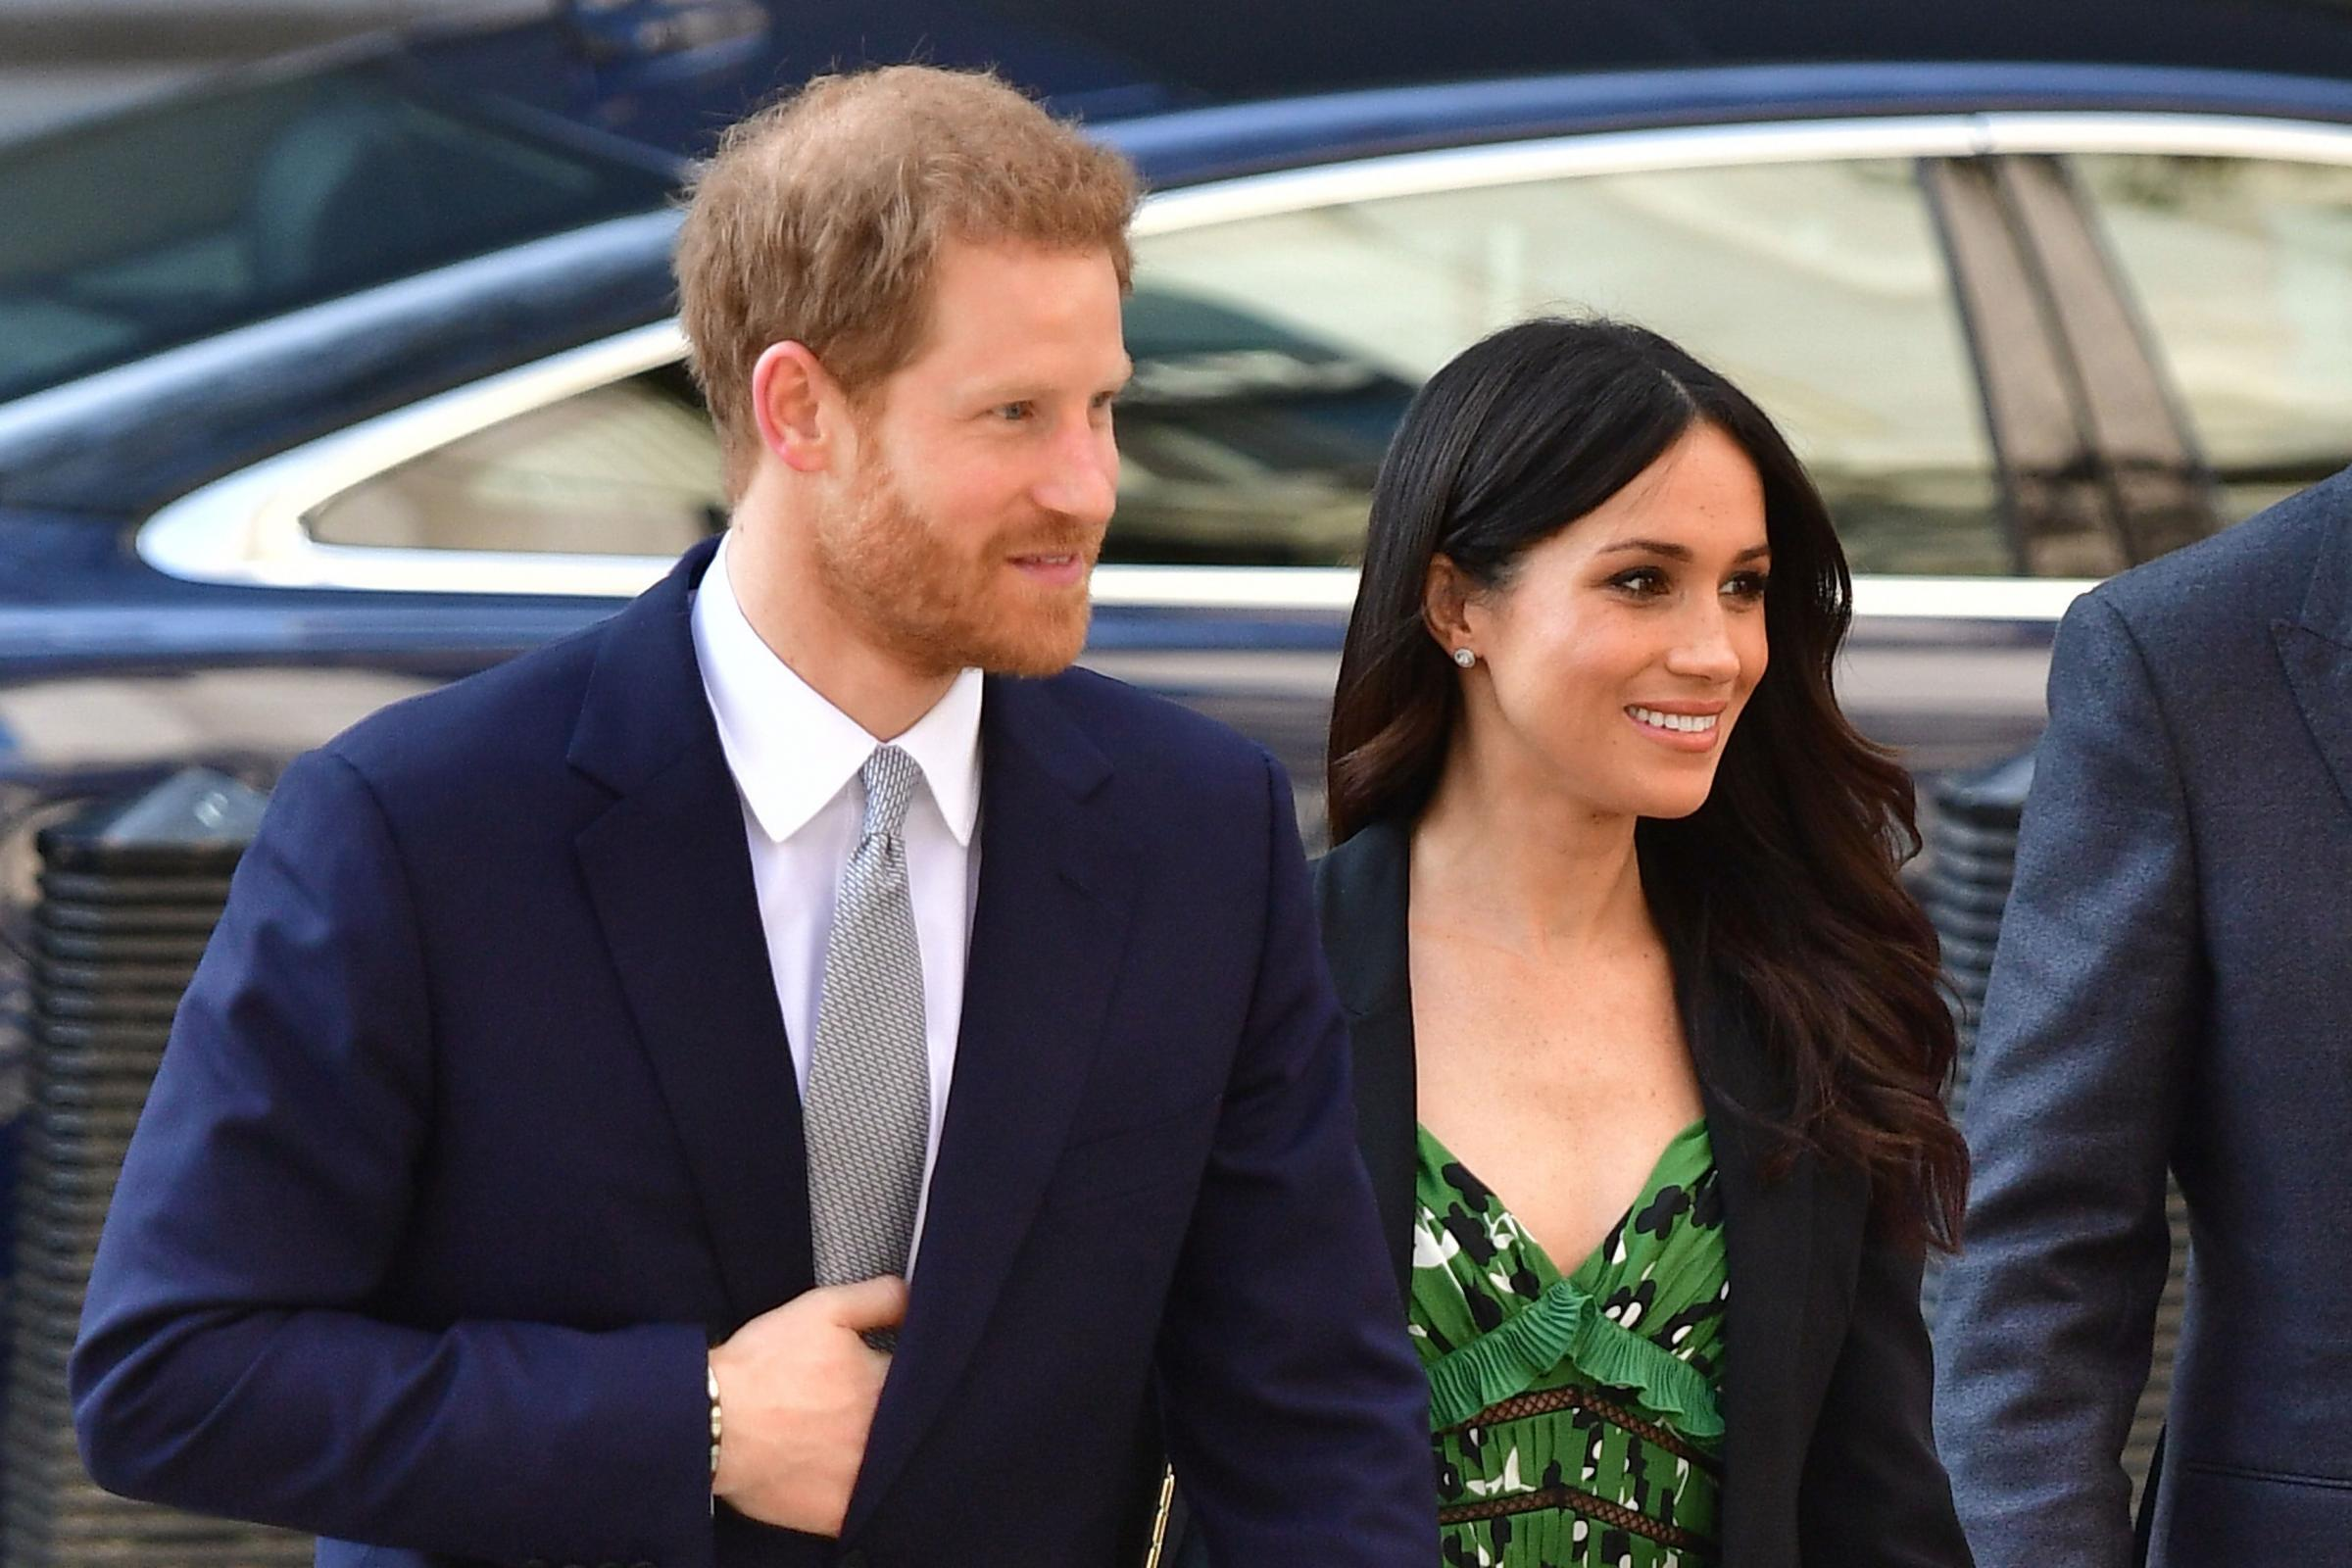 Prince Harry and Meghan Markle. Picture: Dominic Lipinski/PA